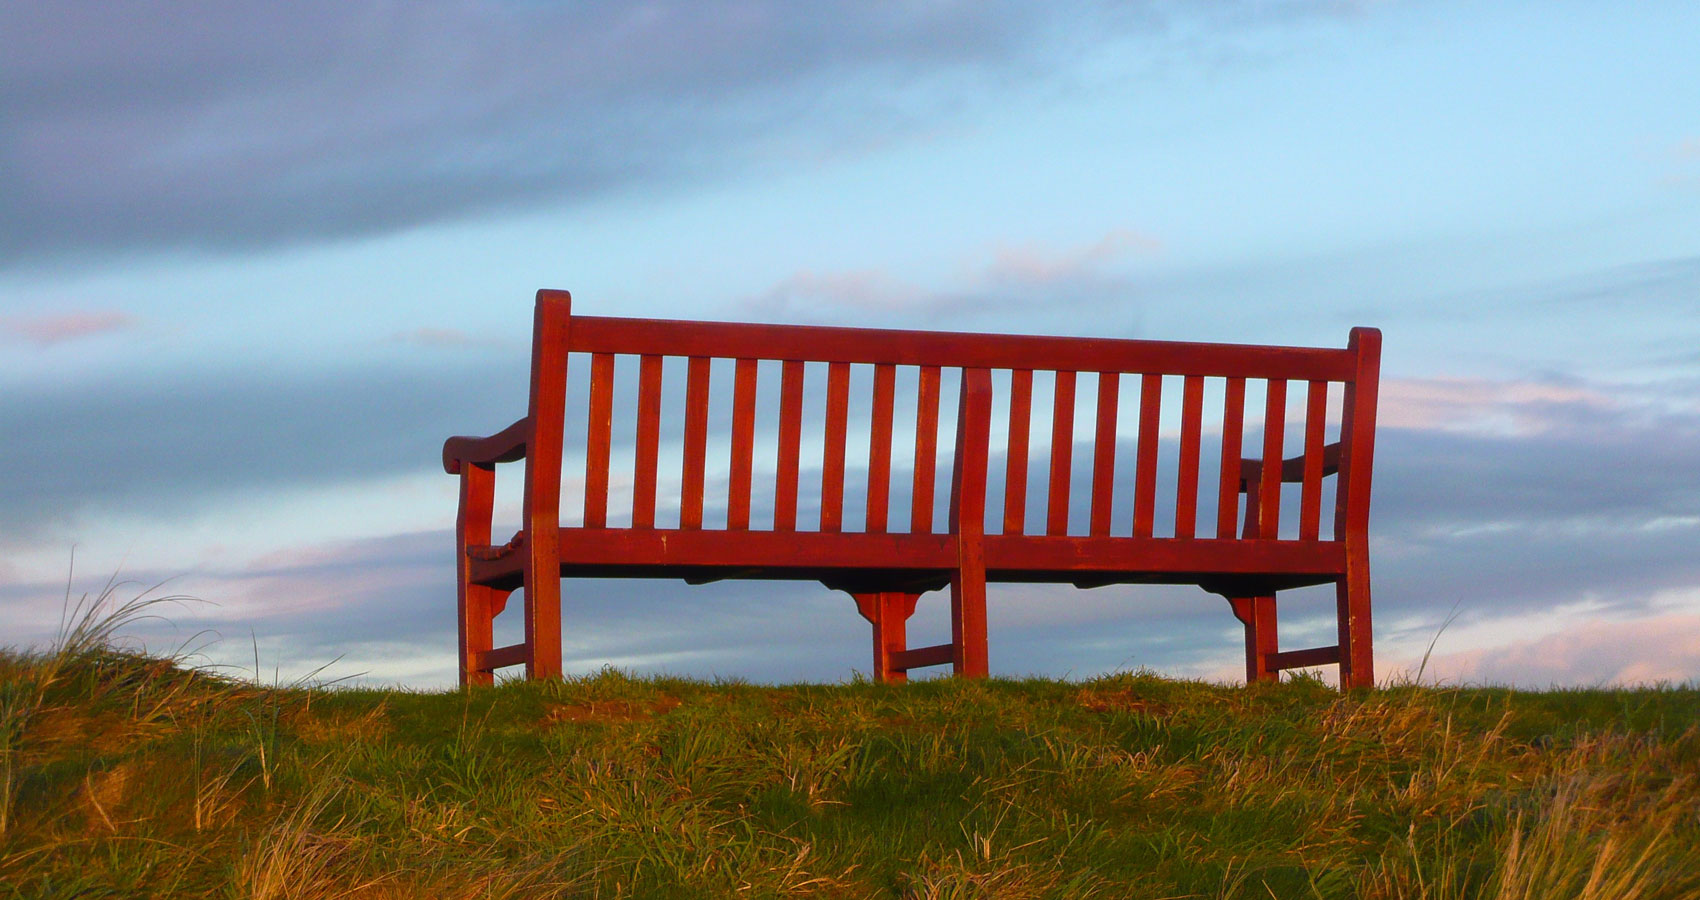 On My Wooden Bench by Heidi Baker at Spillwords.com